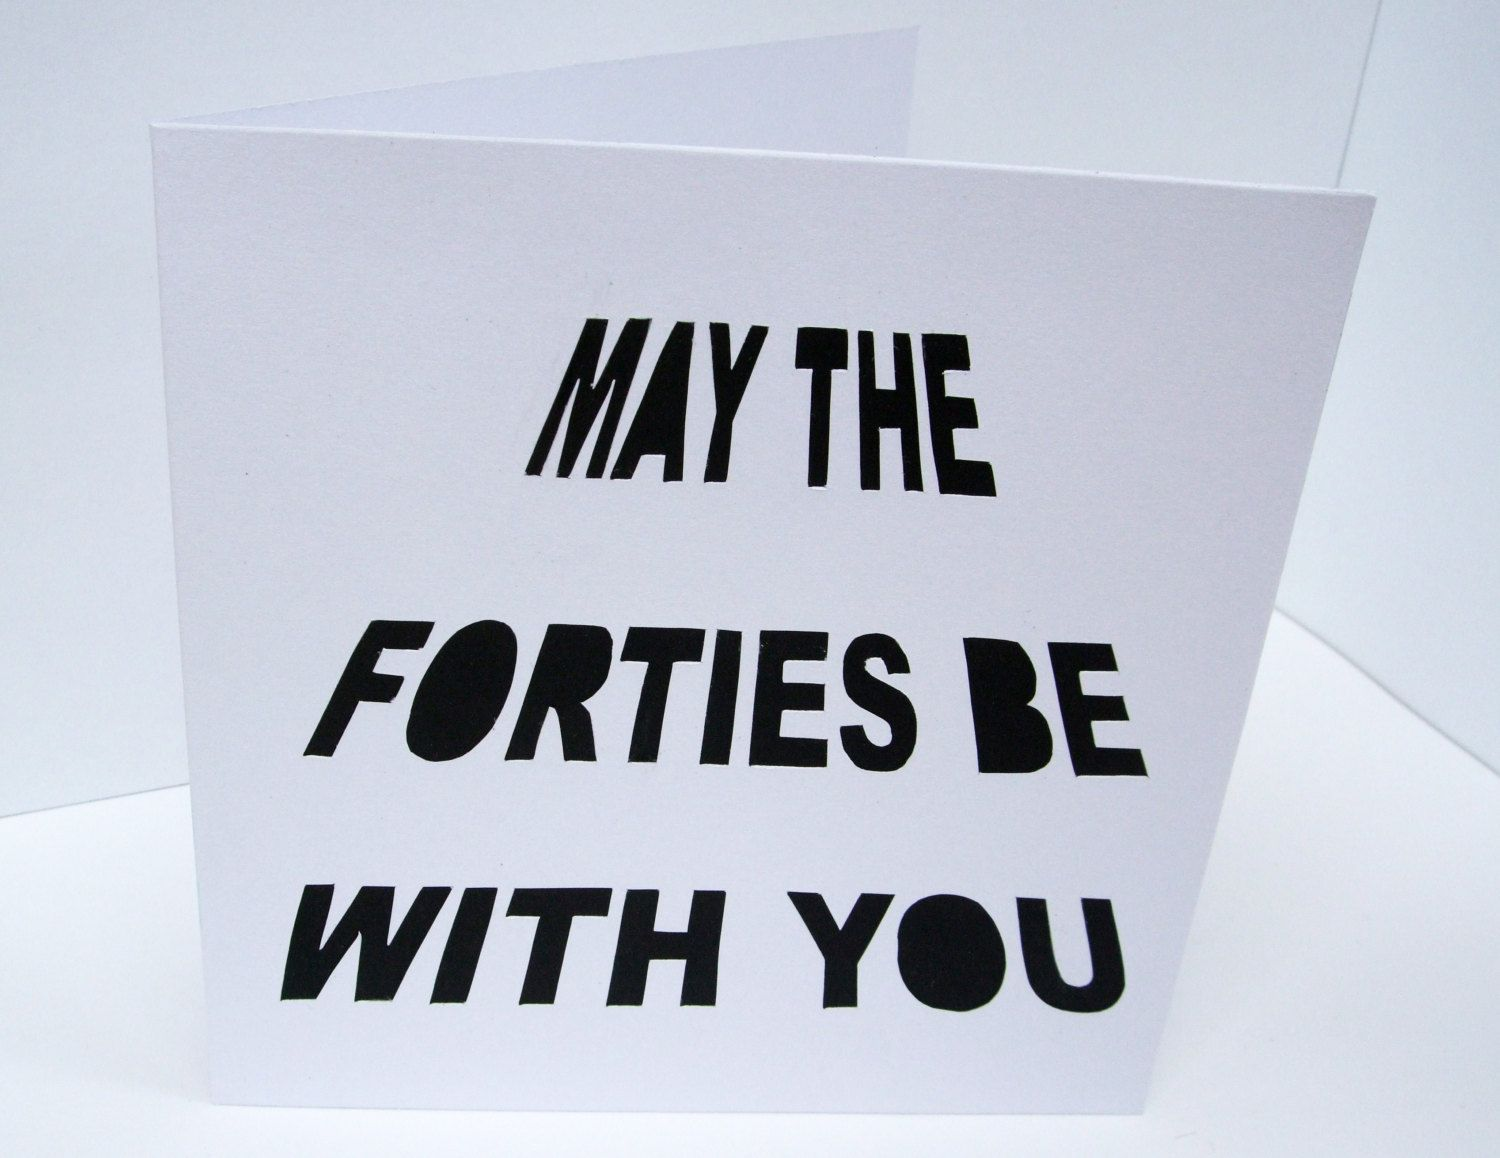 Card Making Ideas 40th Birthday Part - 47: Birthday Card - May The Forties Be With You - Fortieth Birthday Card For A  Man - Handmade Greeting Card - Husband - Boyfriend - Son